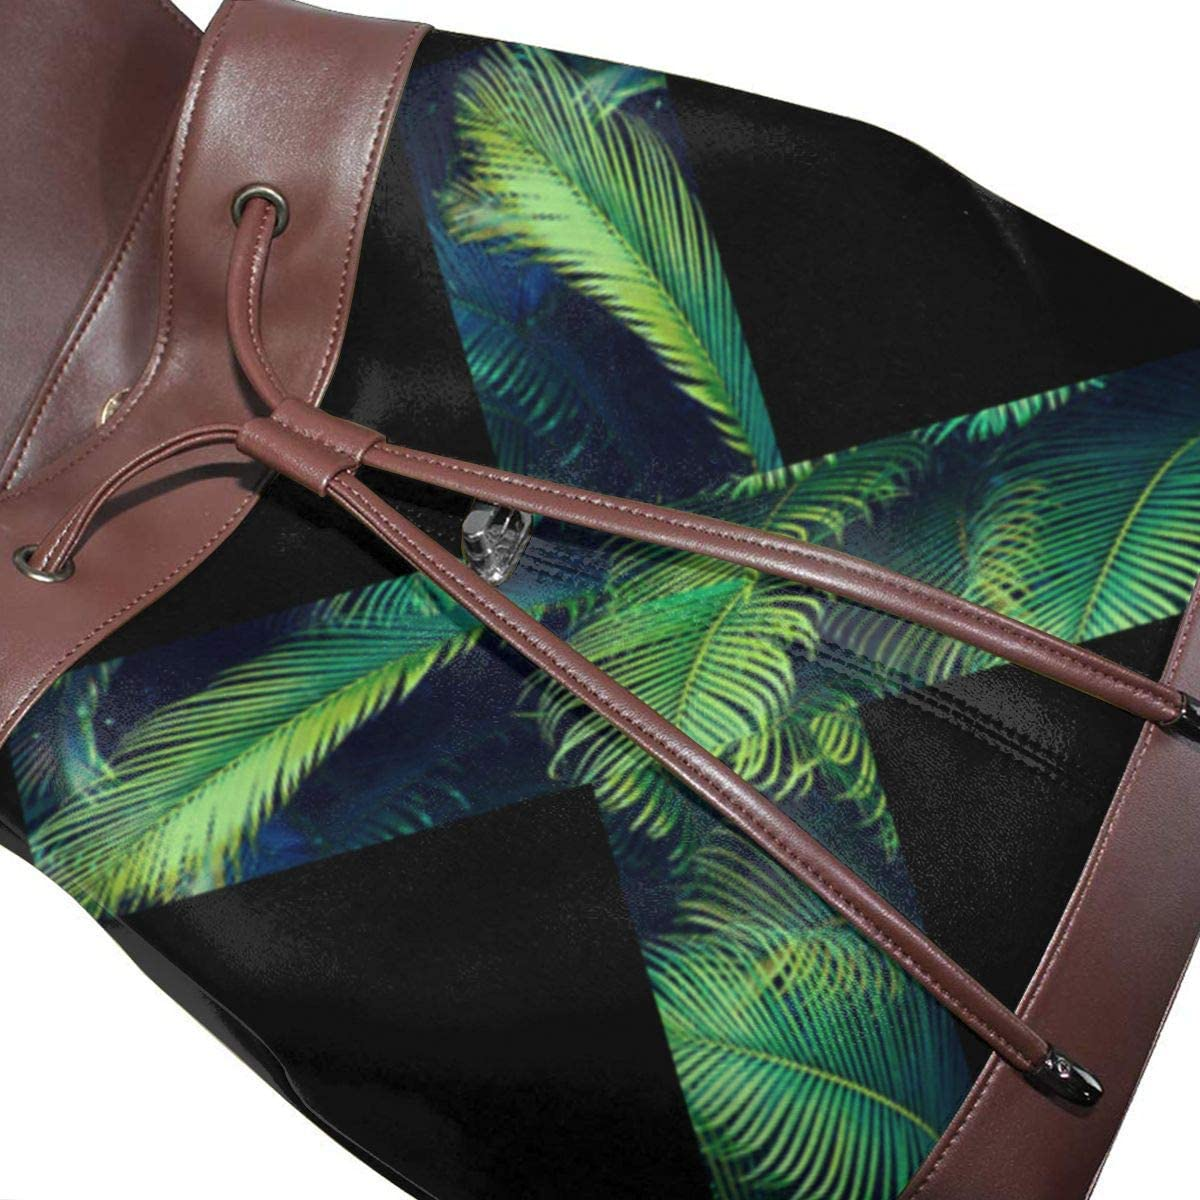 Outdoor Bag And Schoolbag Oximing No Harm To Green Plants Womens Leather Shoulder Bag